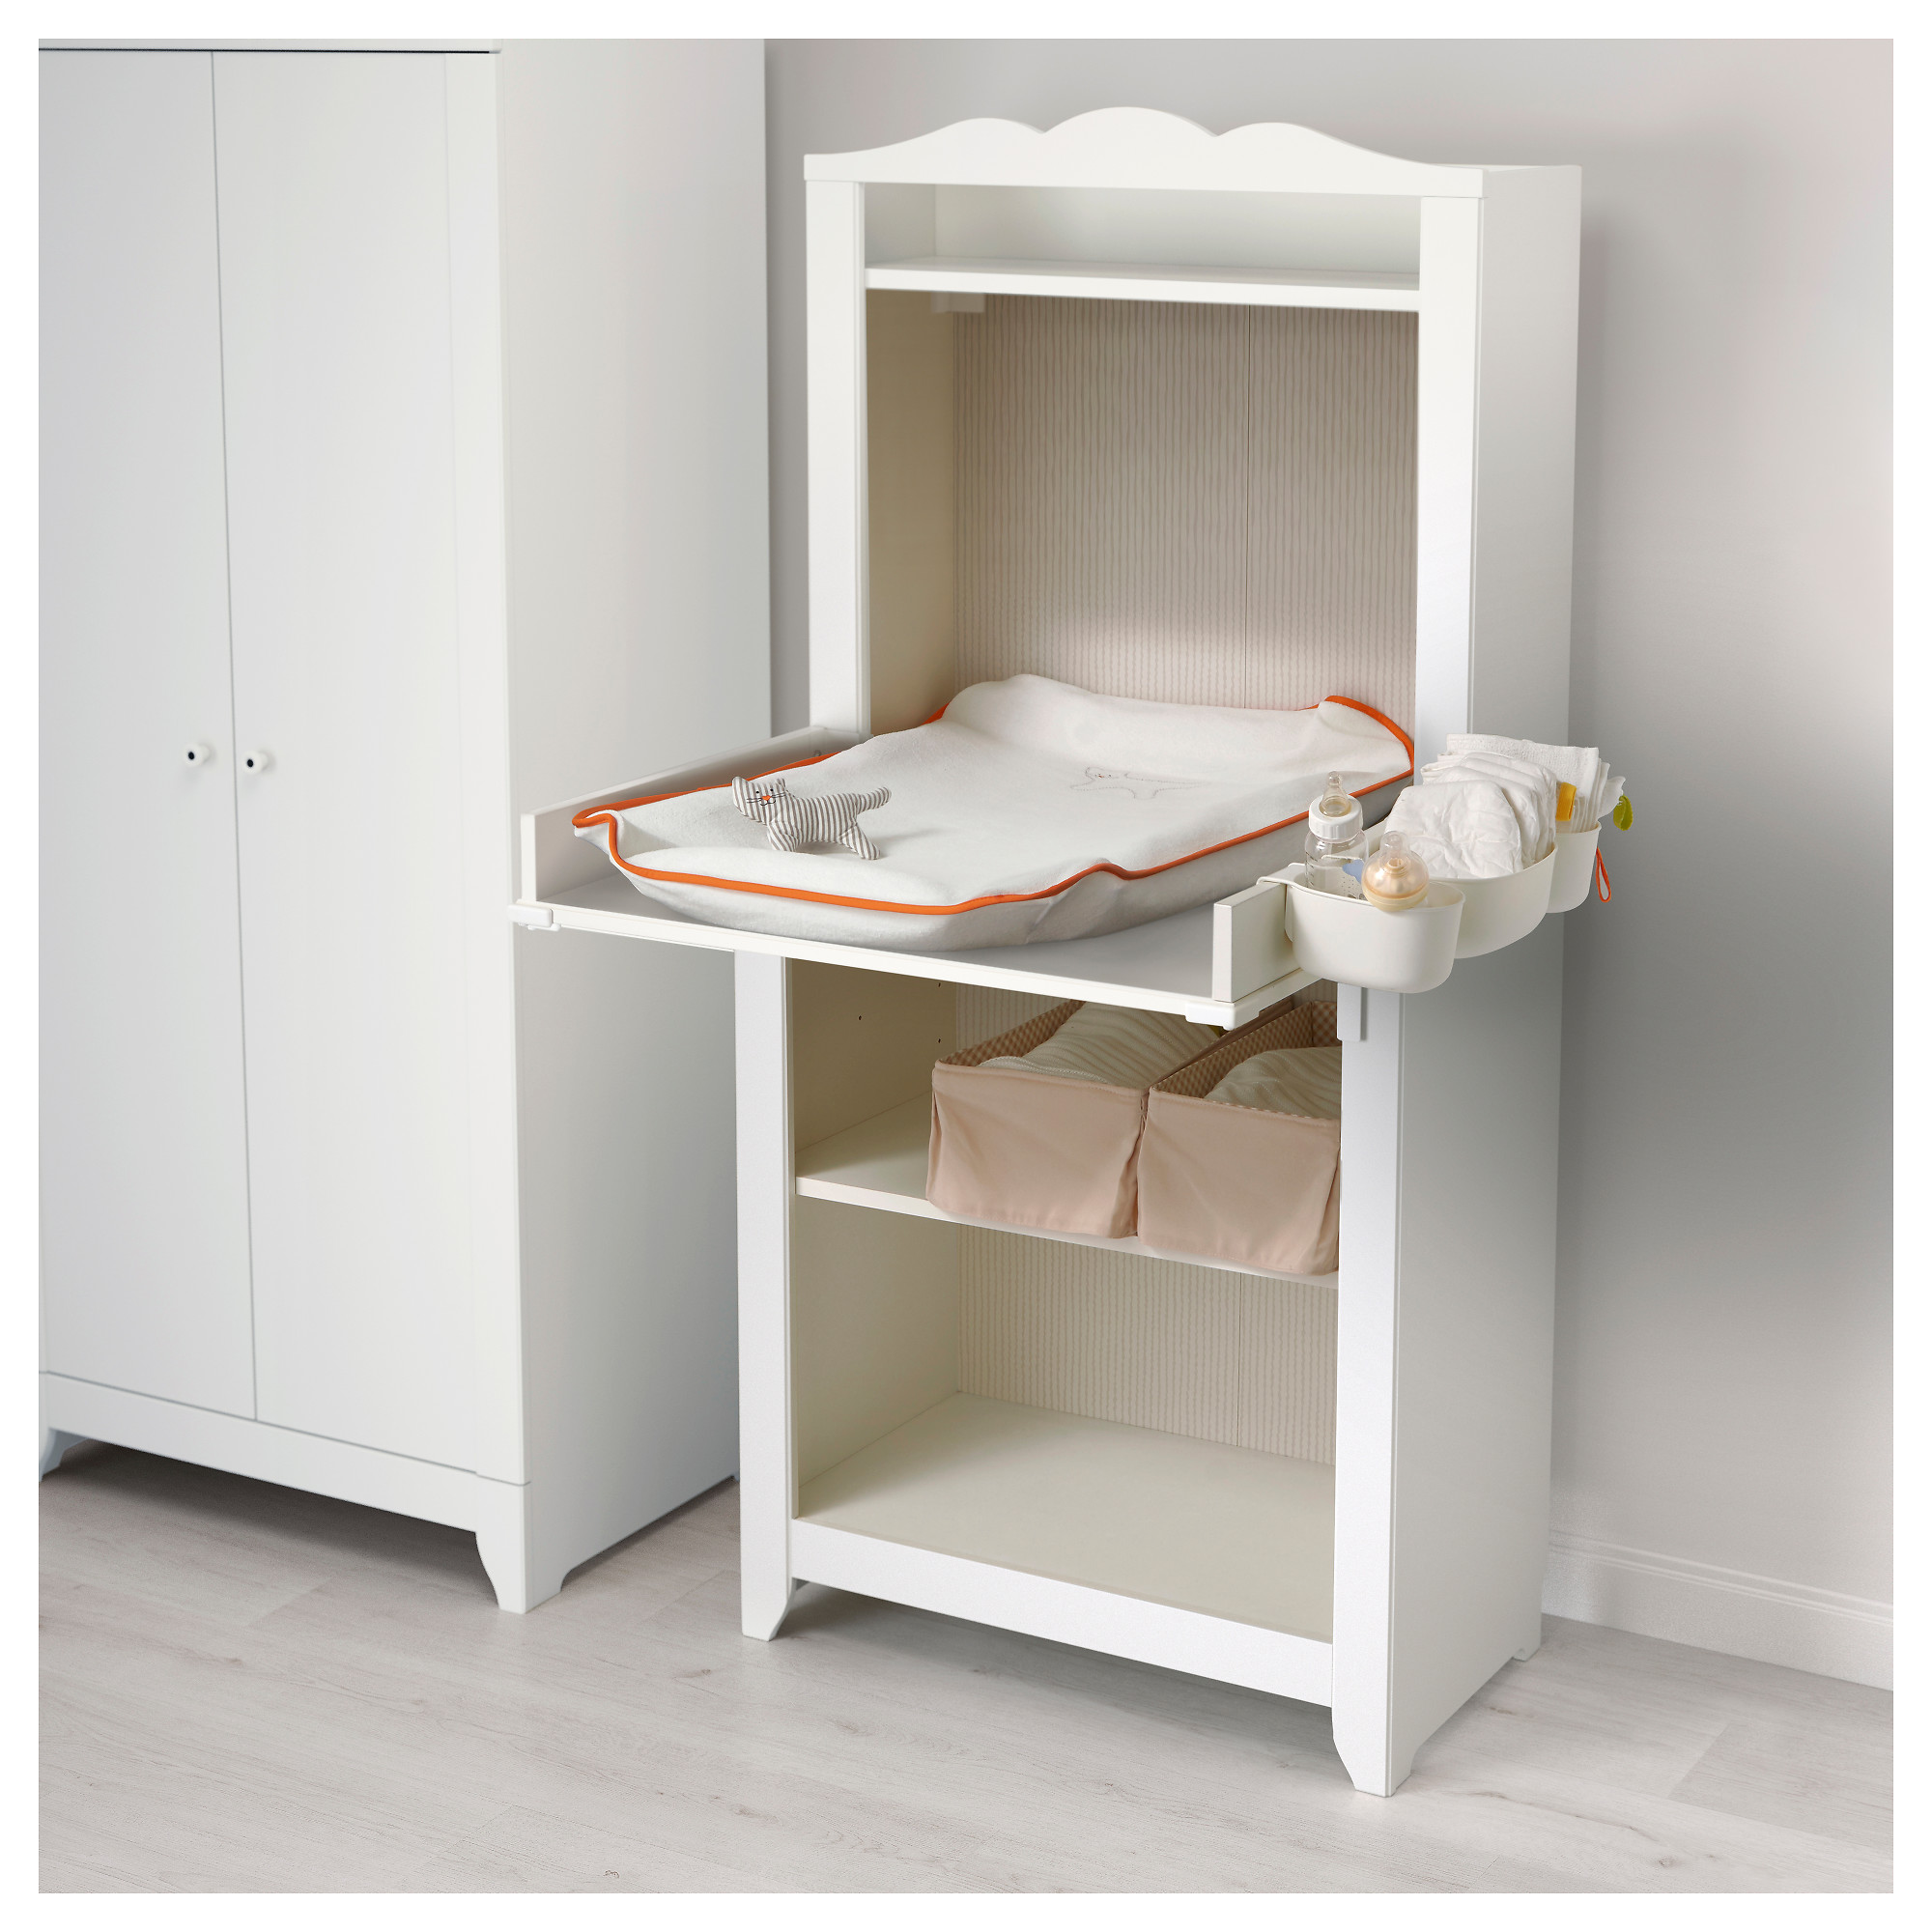 armoire hensvik elegant armoire enfant ikea blanche hensvik occasion with armoire hensvik. Black Bedroom Furniture Sets. Home Design Ideas